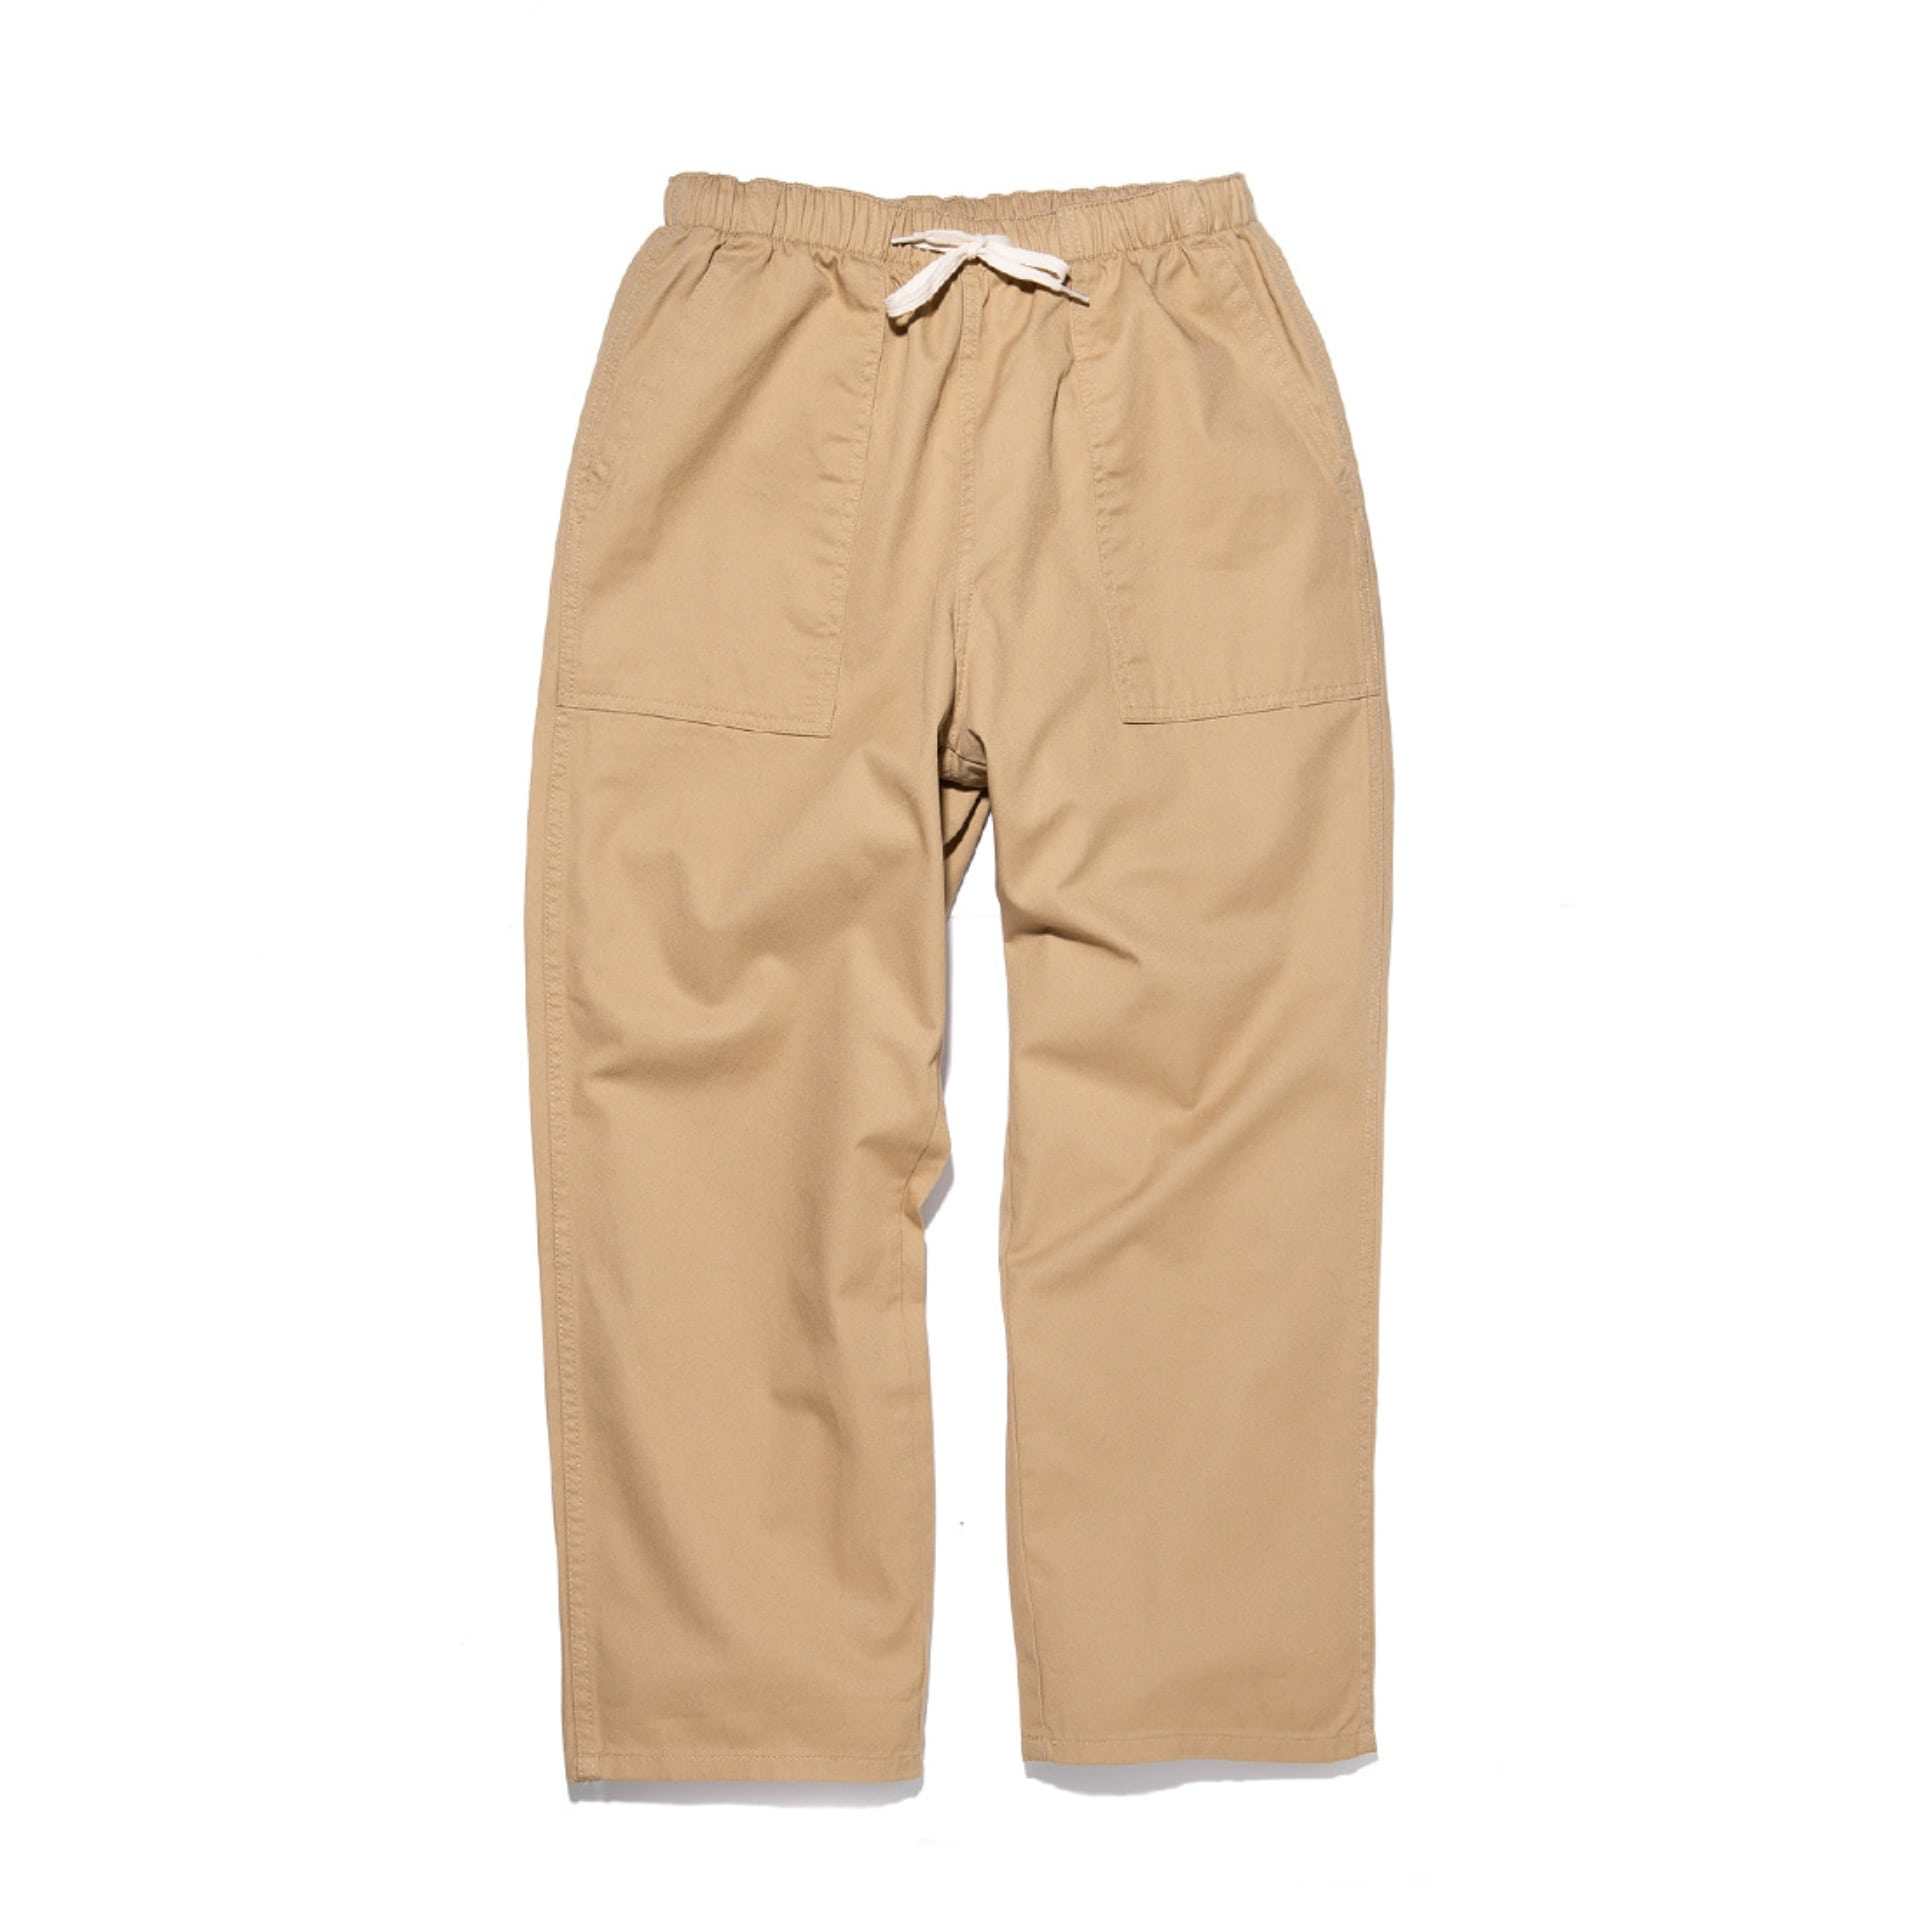 Ocean Fatigue Pants(BEIGE)